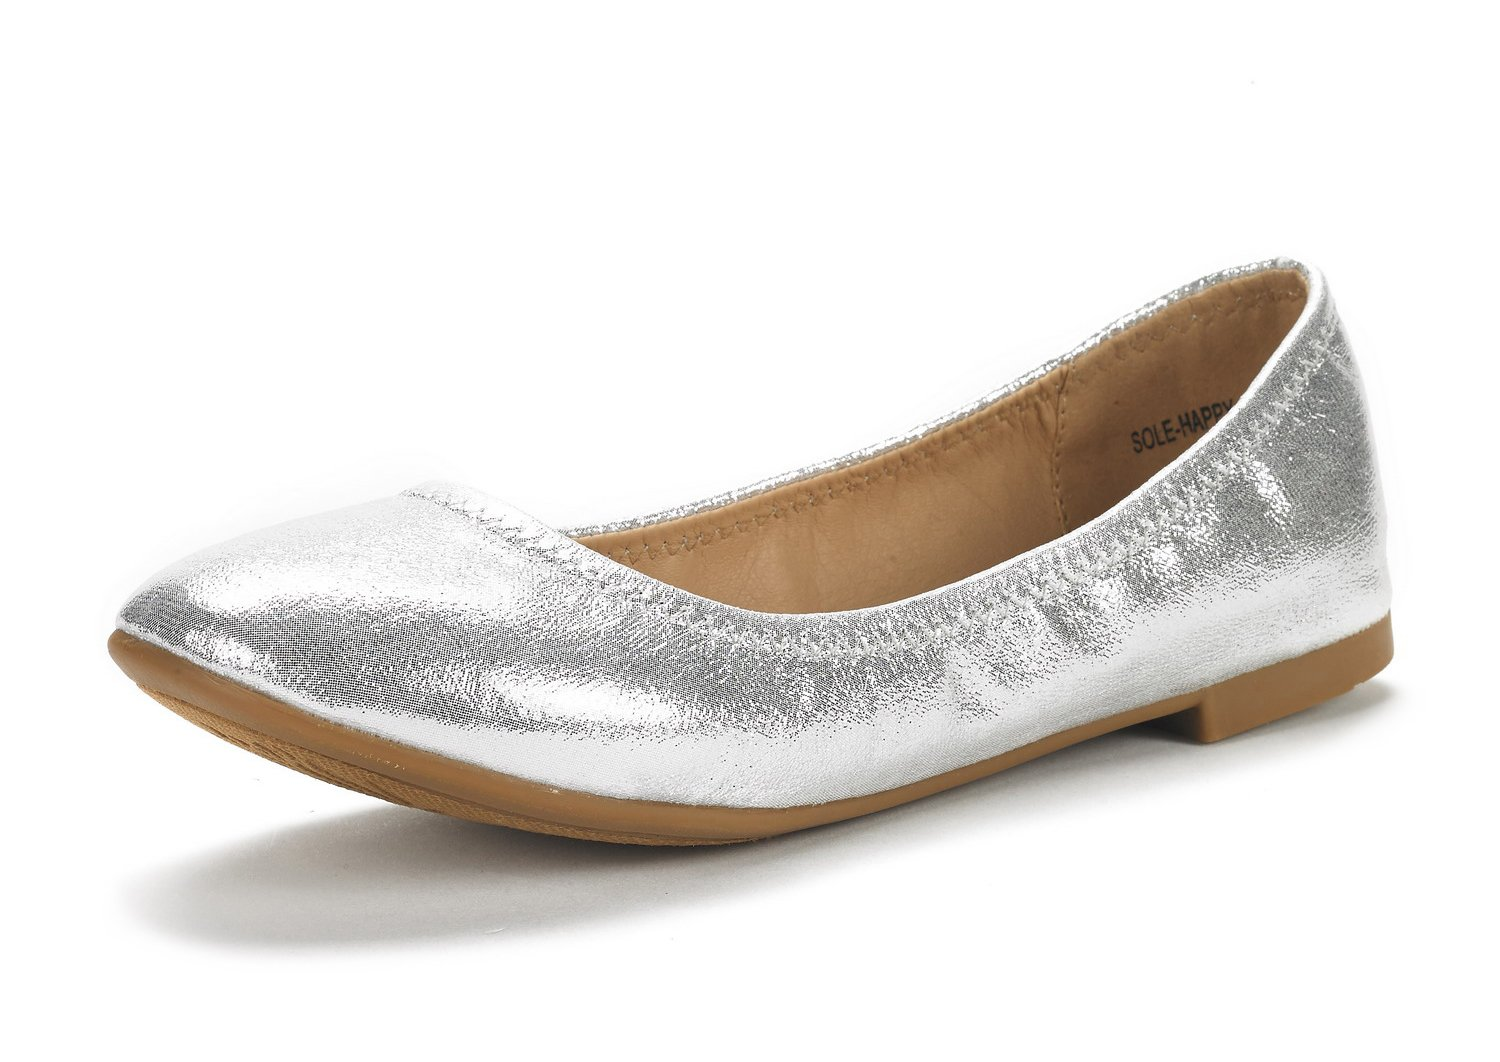 DREAM PAIRS Women's Sole Happy Silver Ballerina Walking Flats Shoes - 6 M US